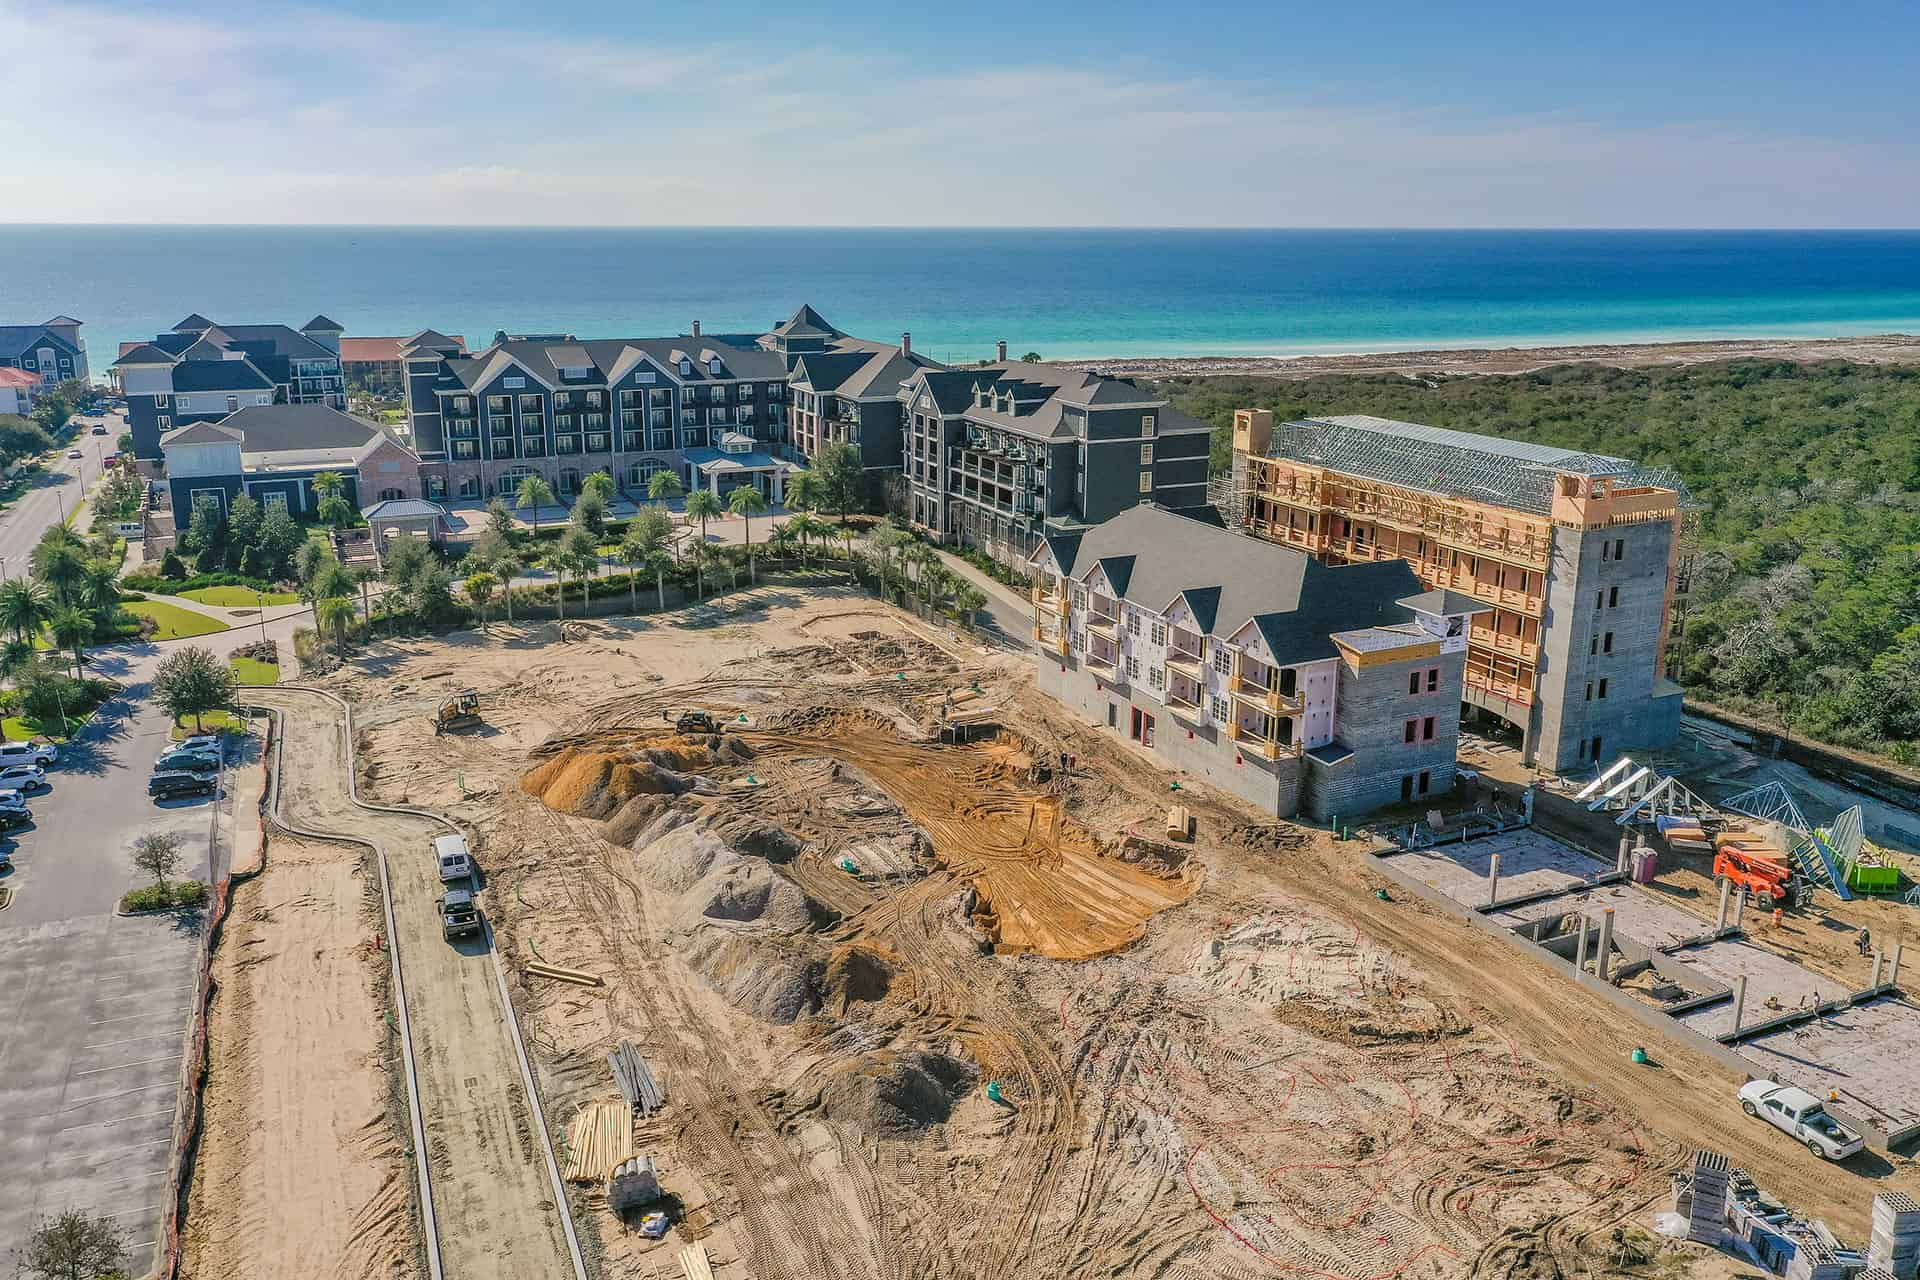 Parkside_at_Henderson_Beach_Resort_January_2021 drone photo looking south